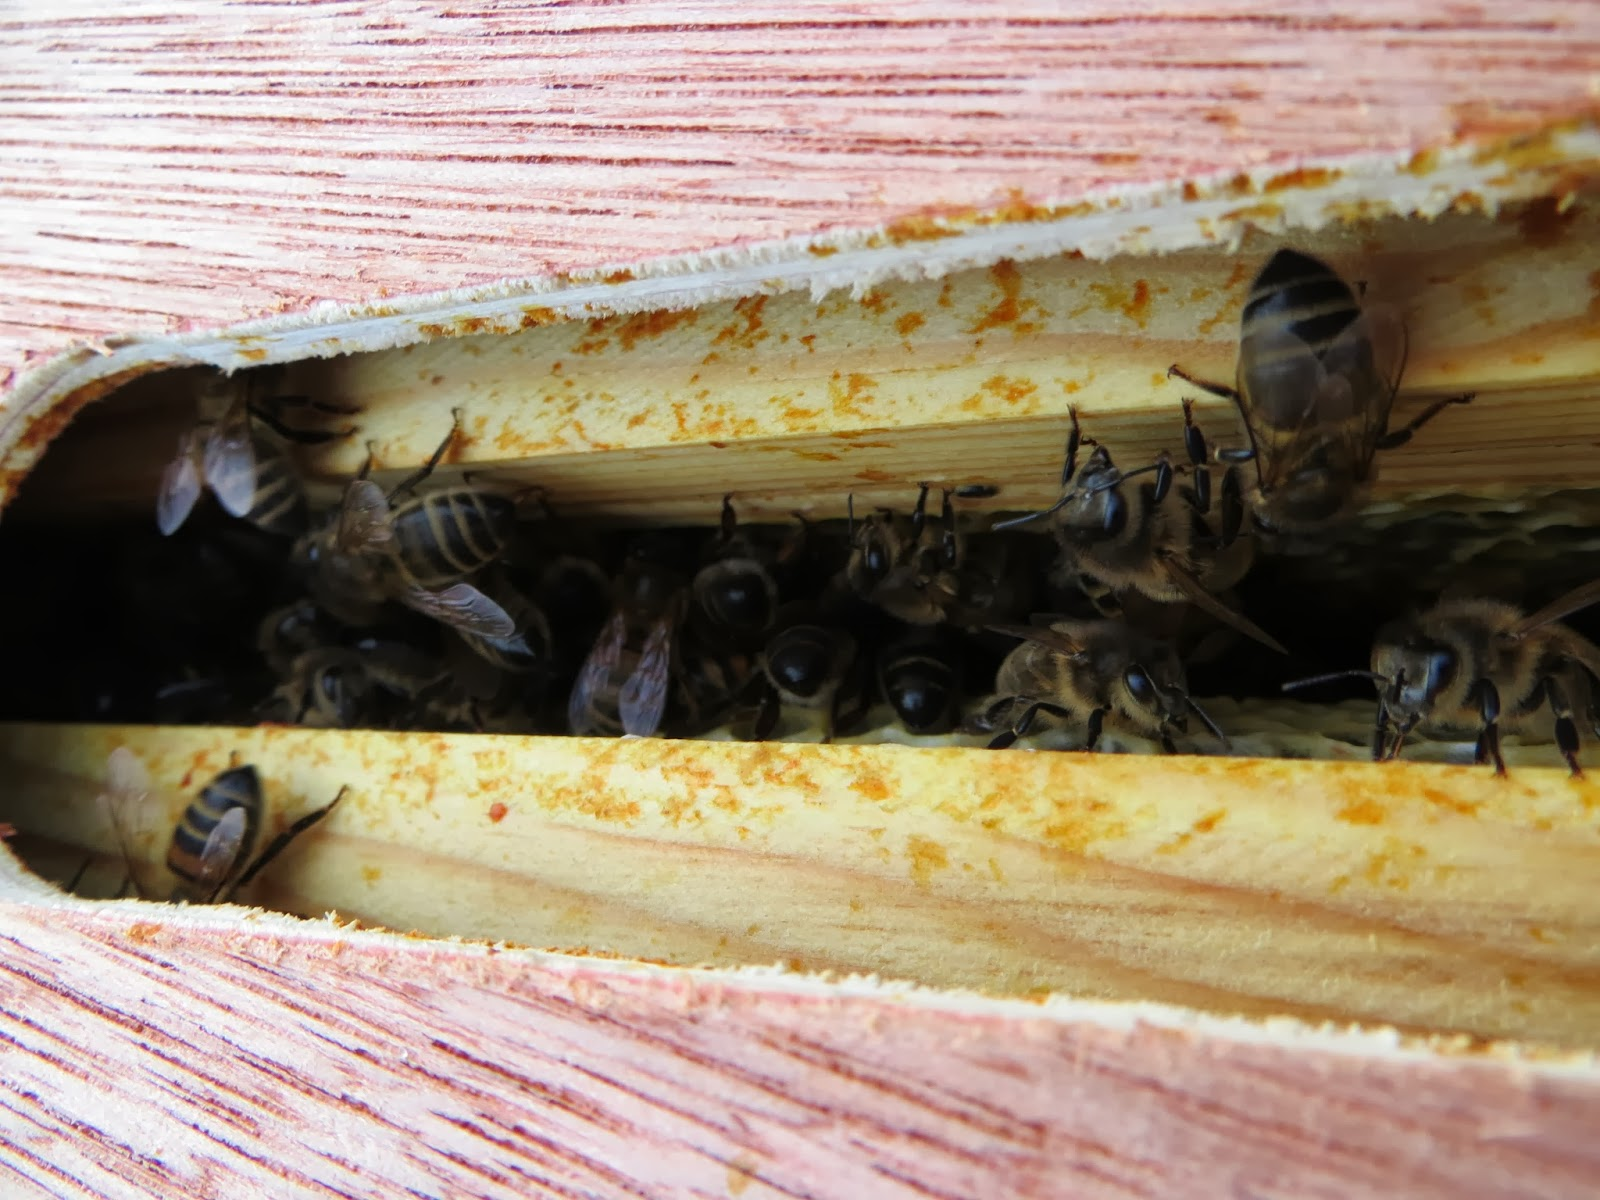 bees in the hive in winter